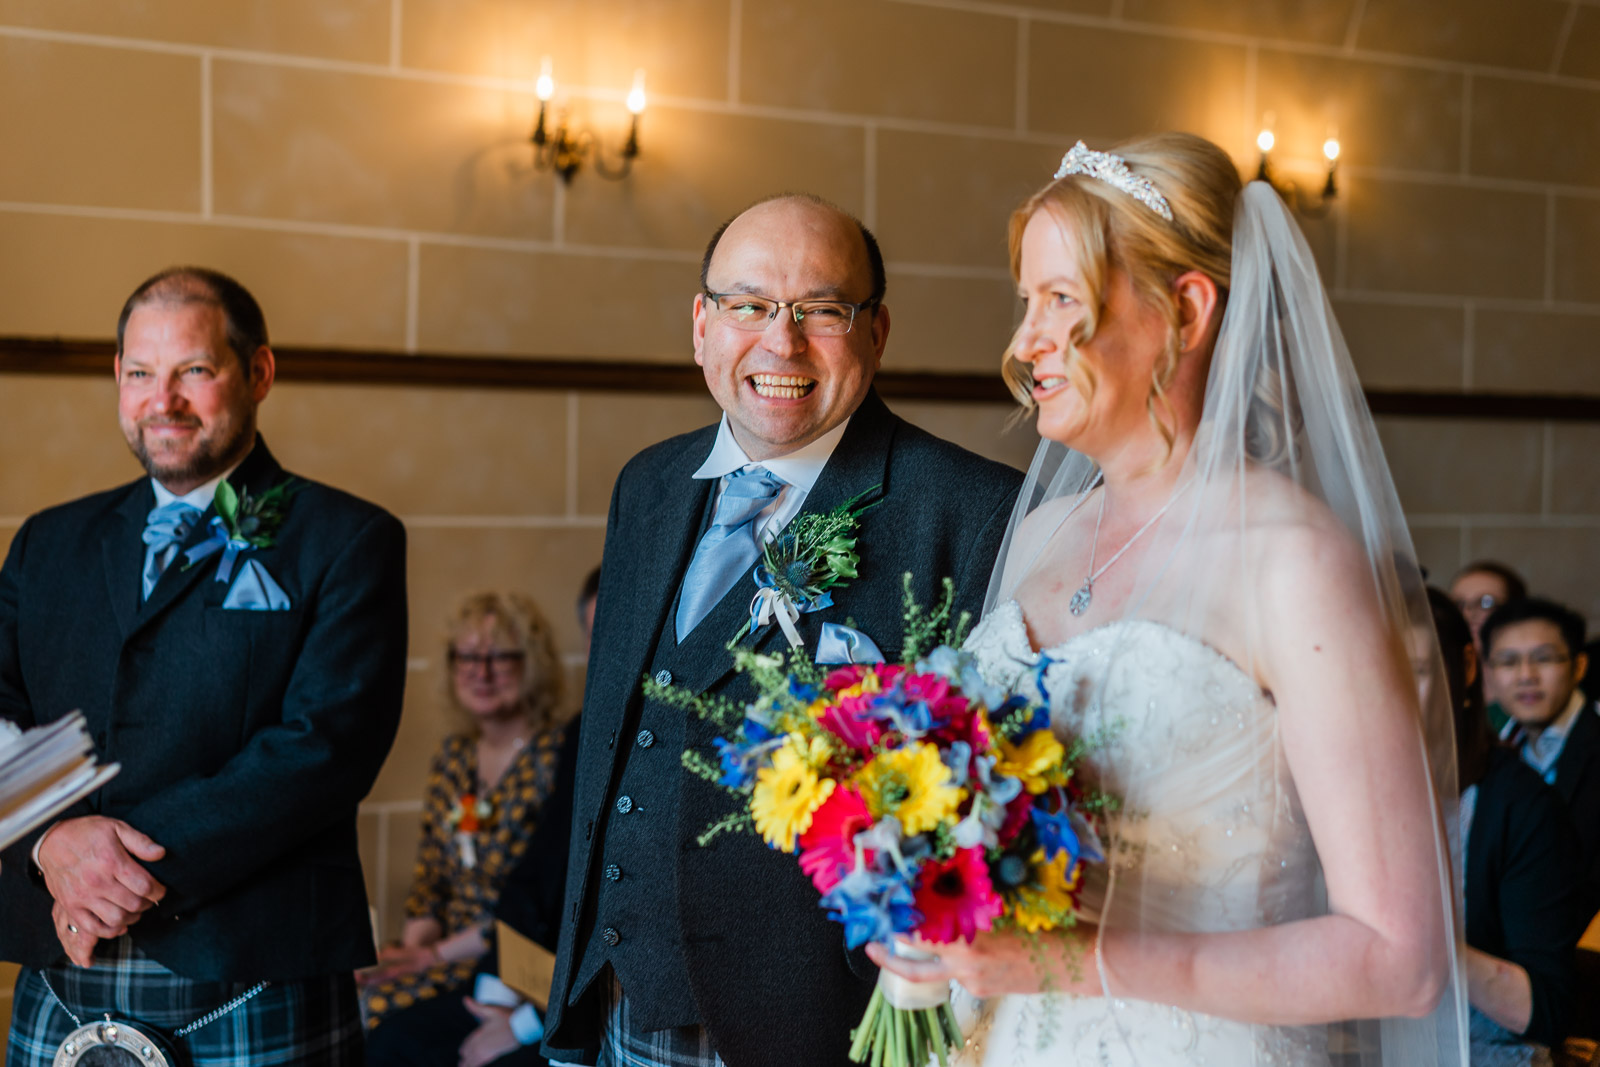 dalhousie_castle_wedding_edinburgh_dearlyphotography (113 of 371).jpg